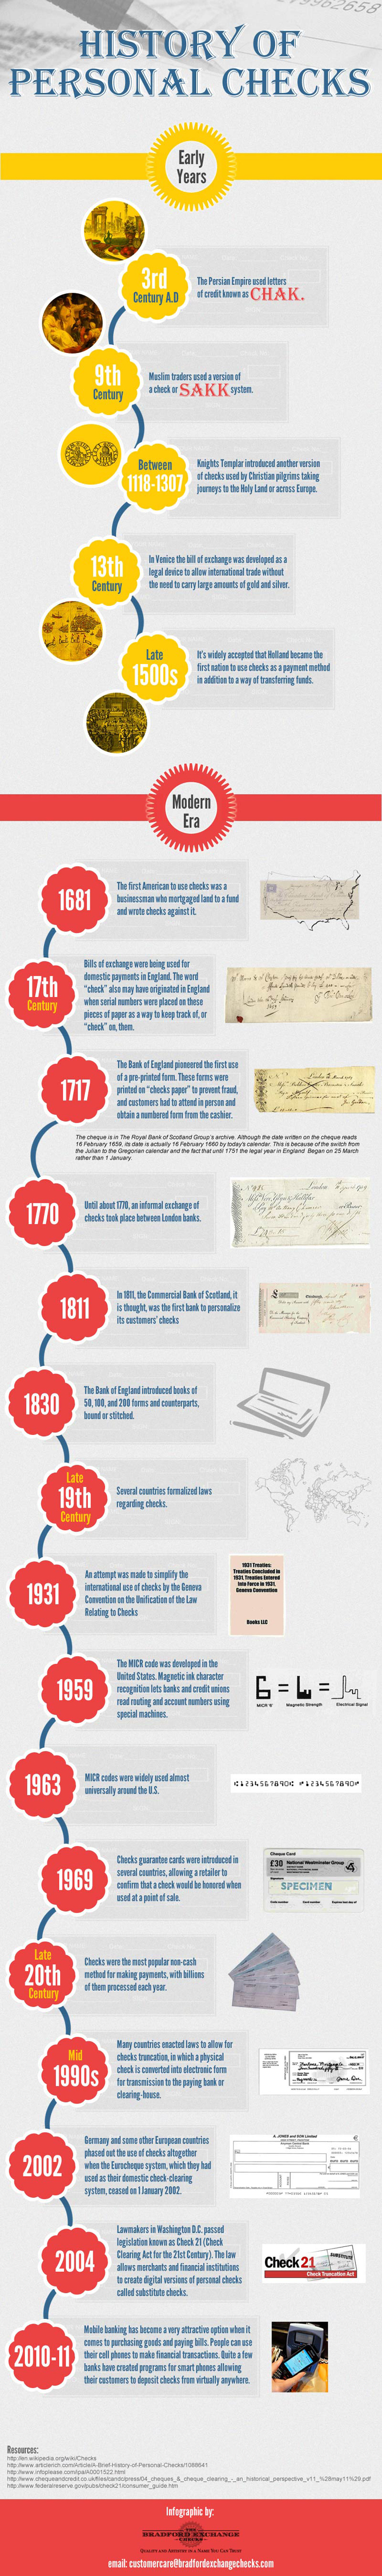 History of Personal Checks